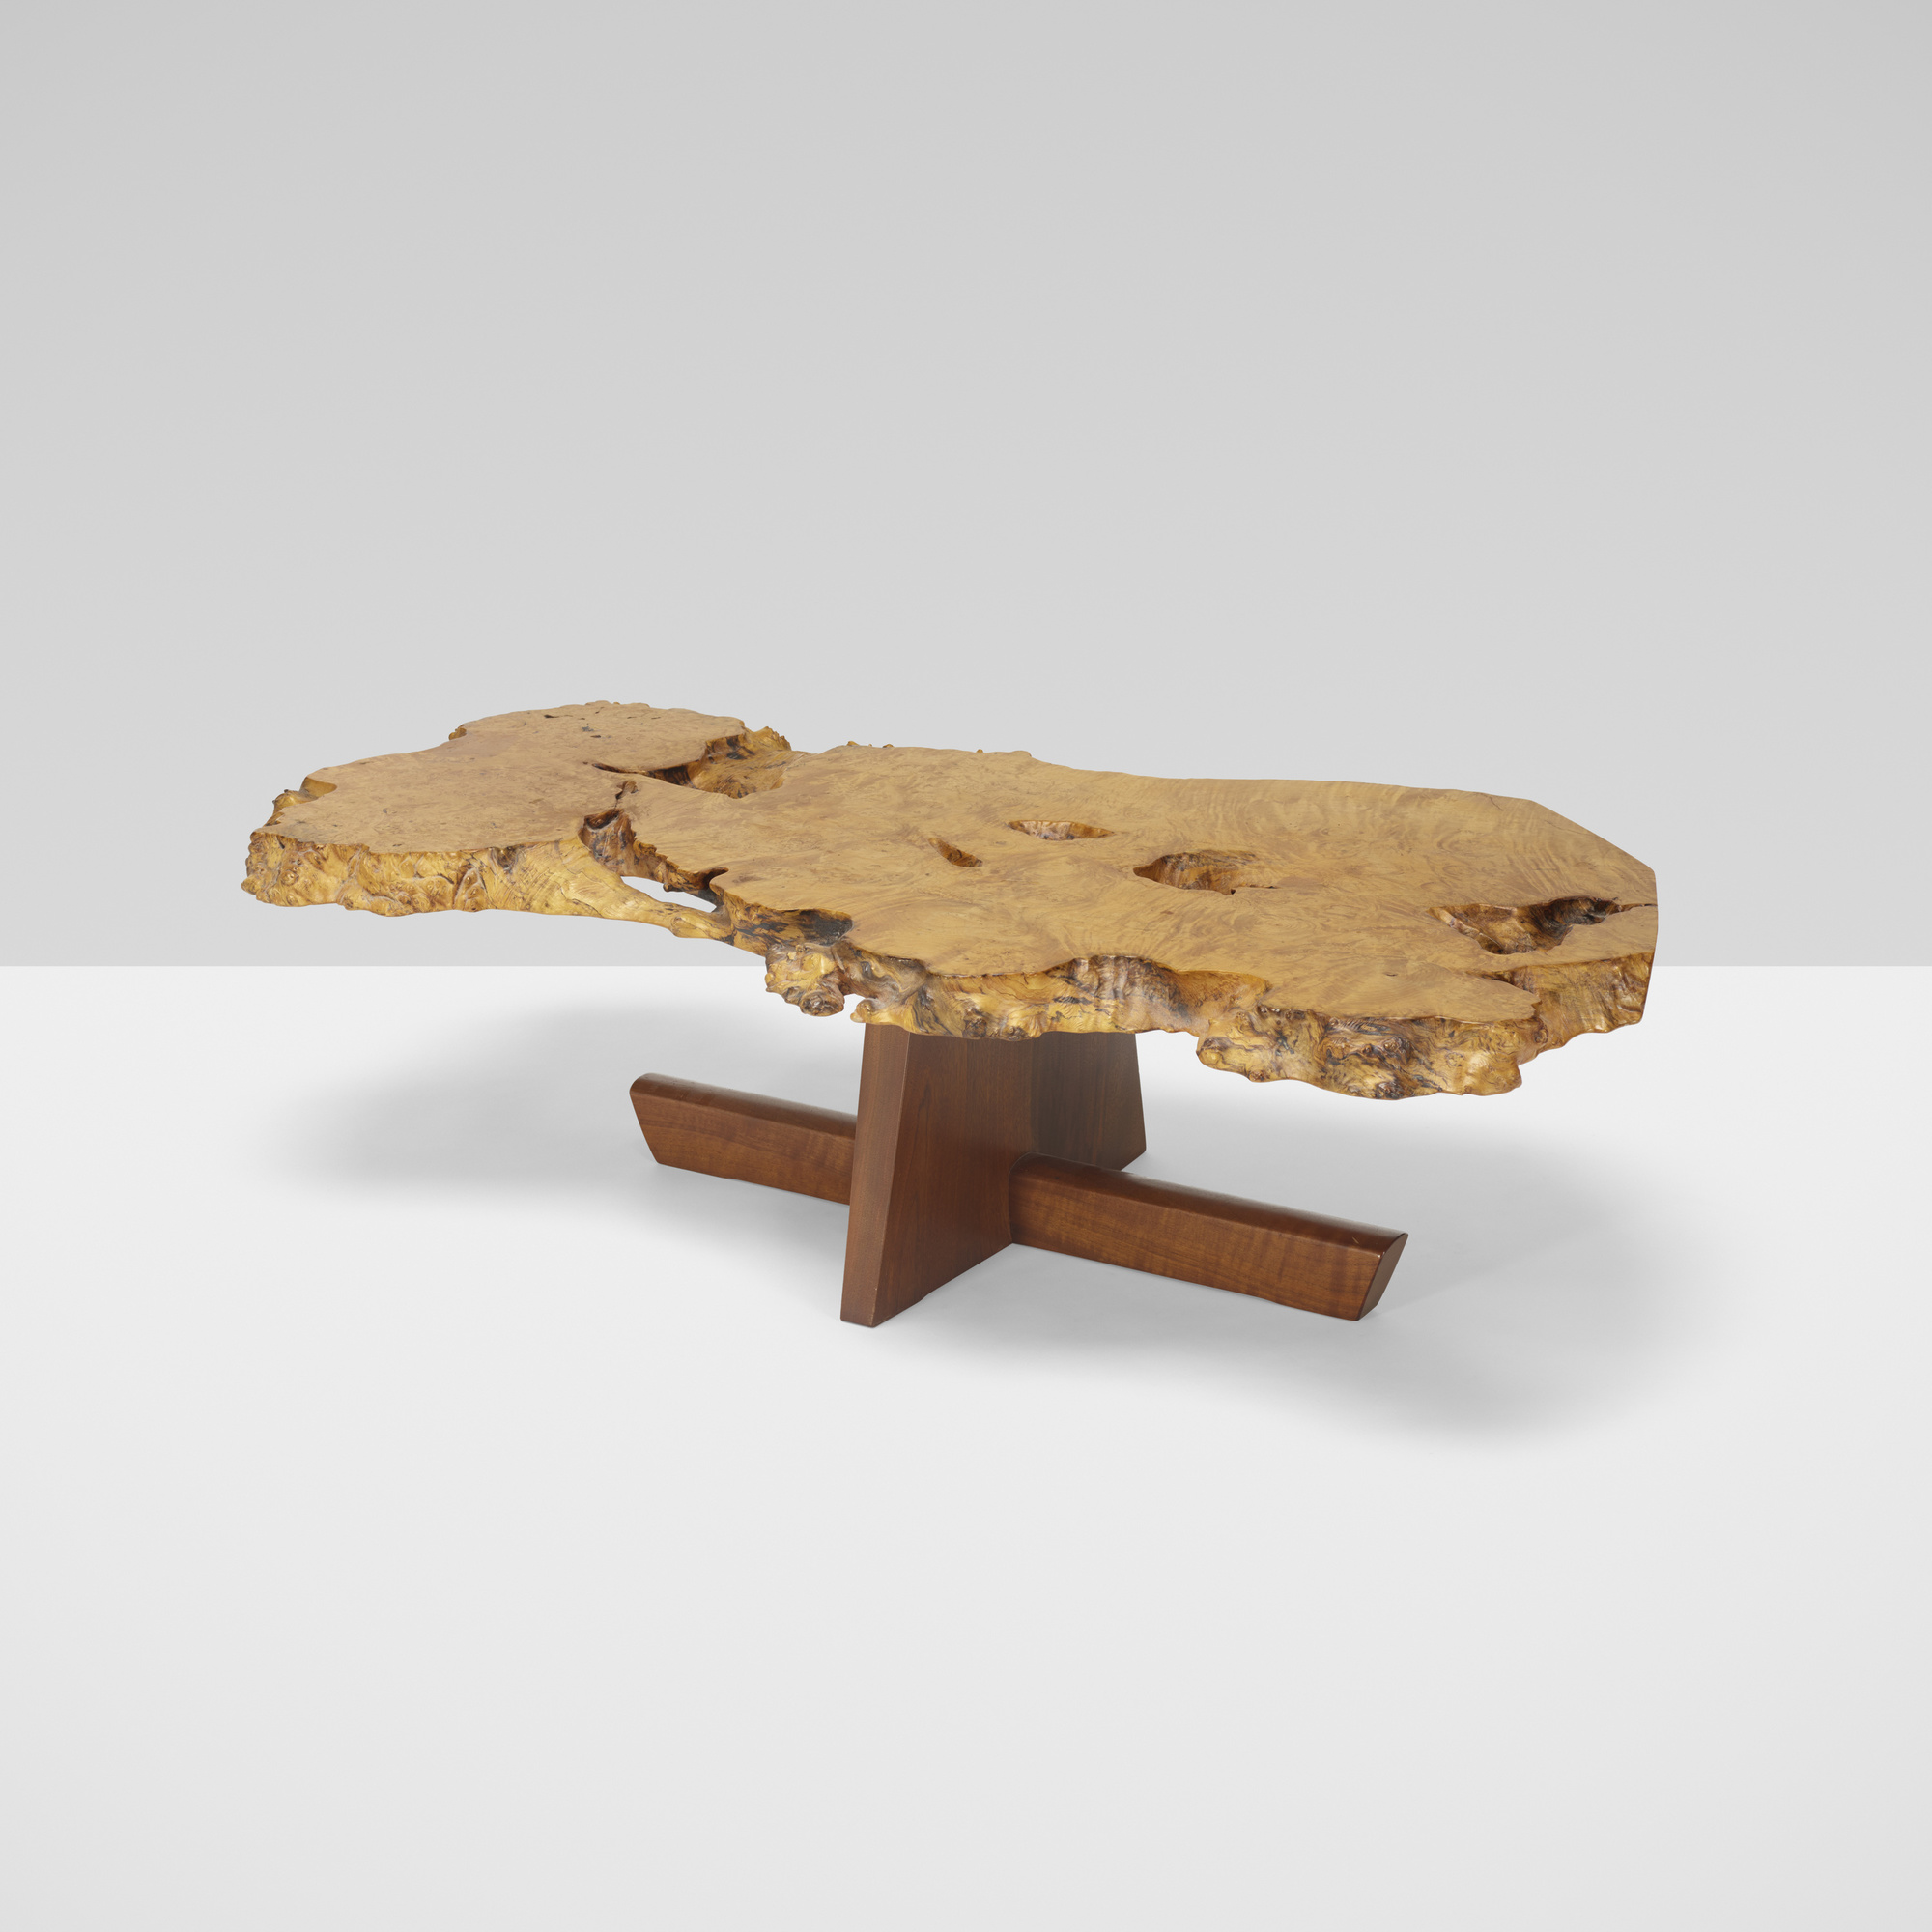 122 GEORGE NAKASHIMA Minguren I coffee table Design 8